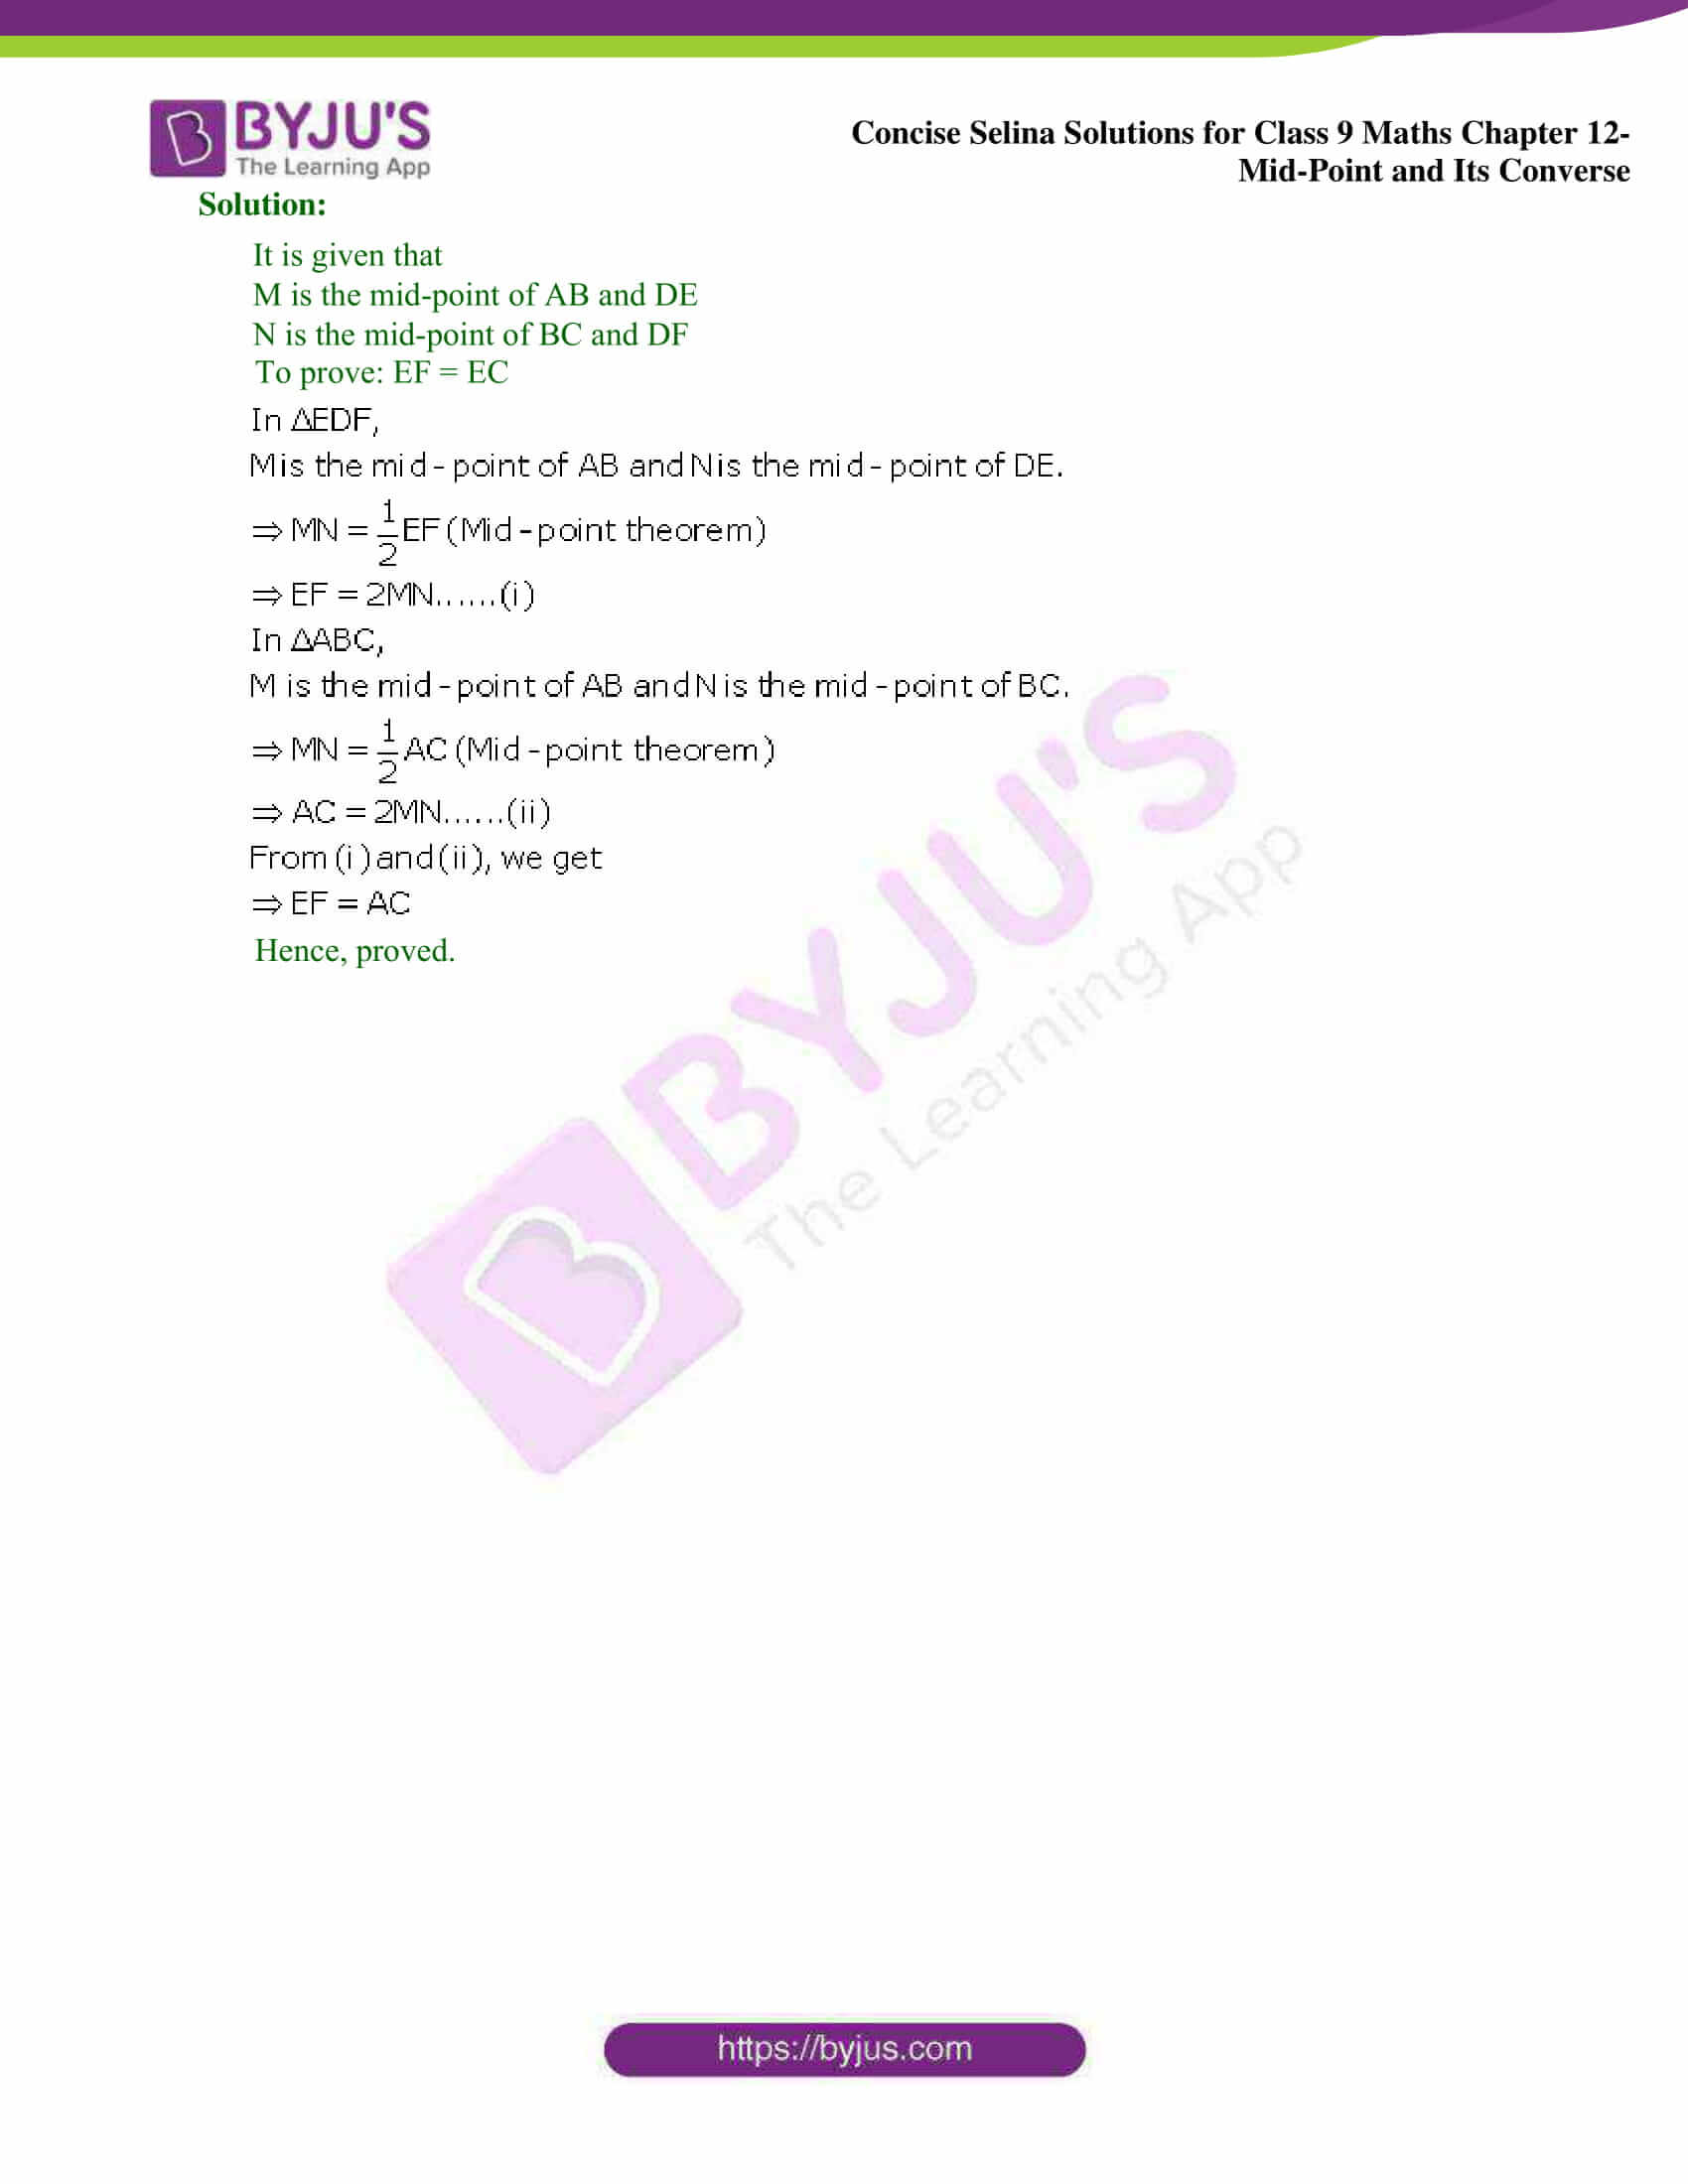 selina Solutions for Class 9 Maths Chapter 12 12